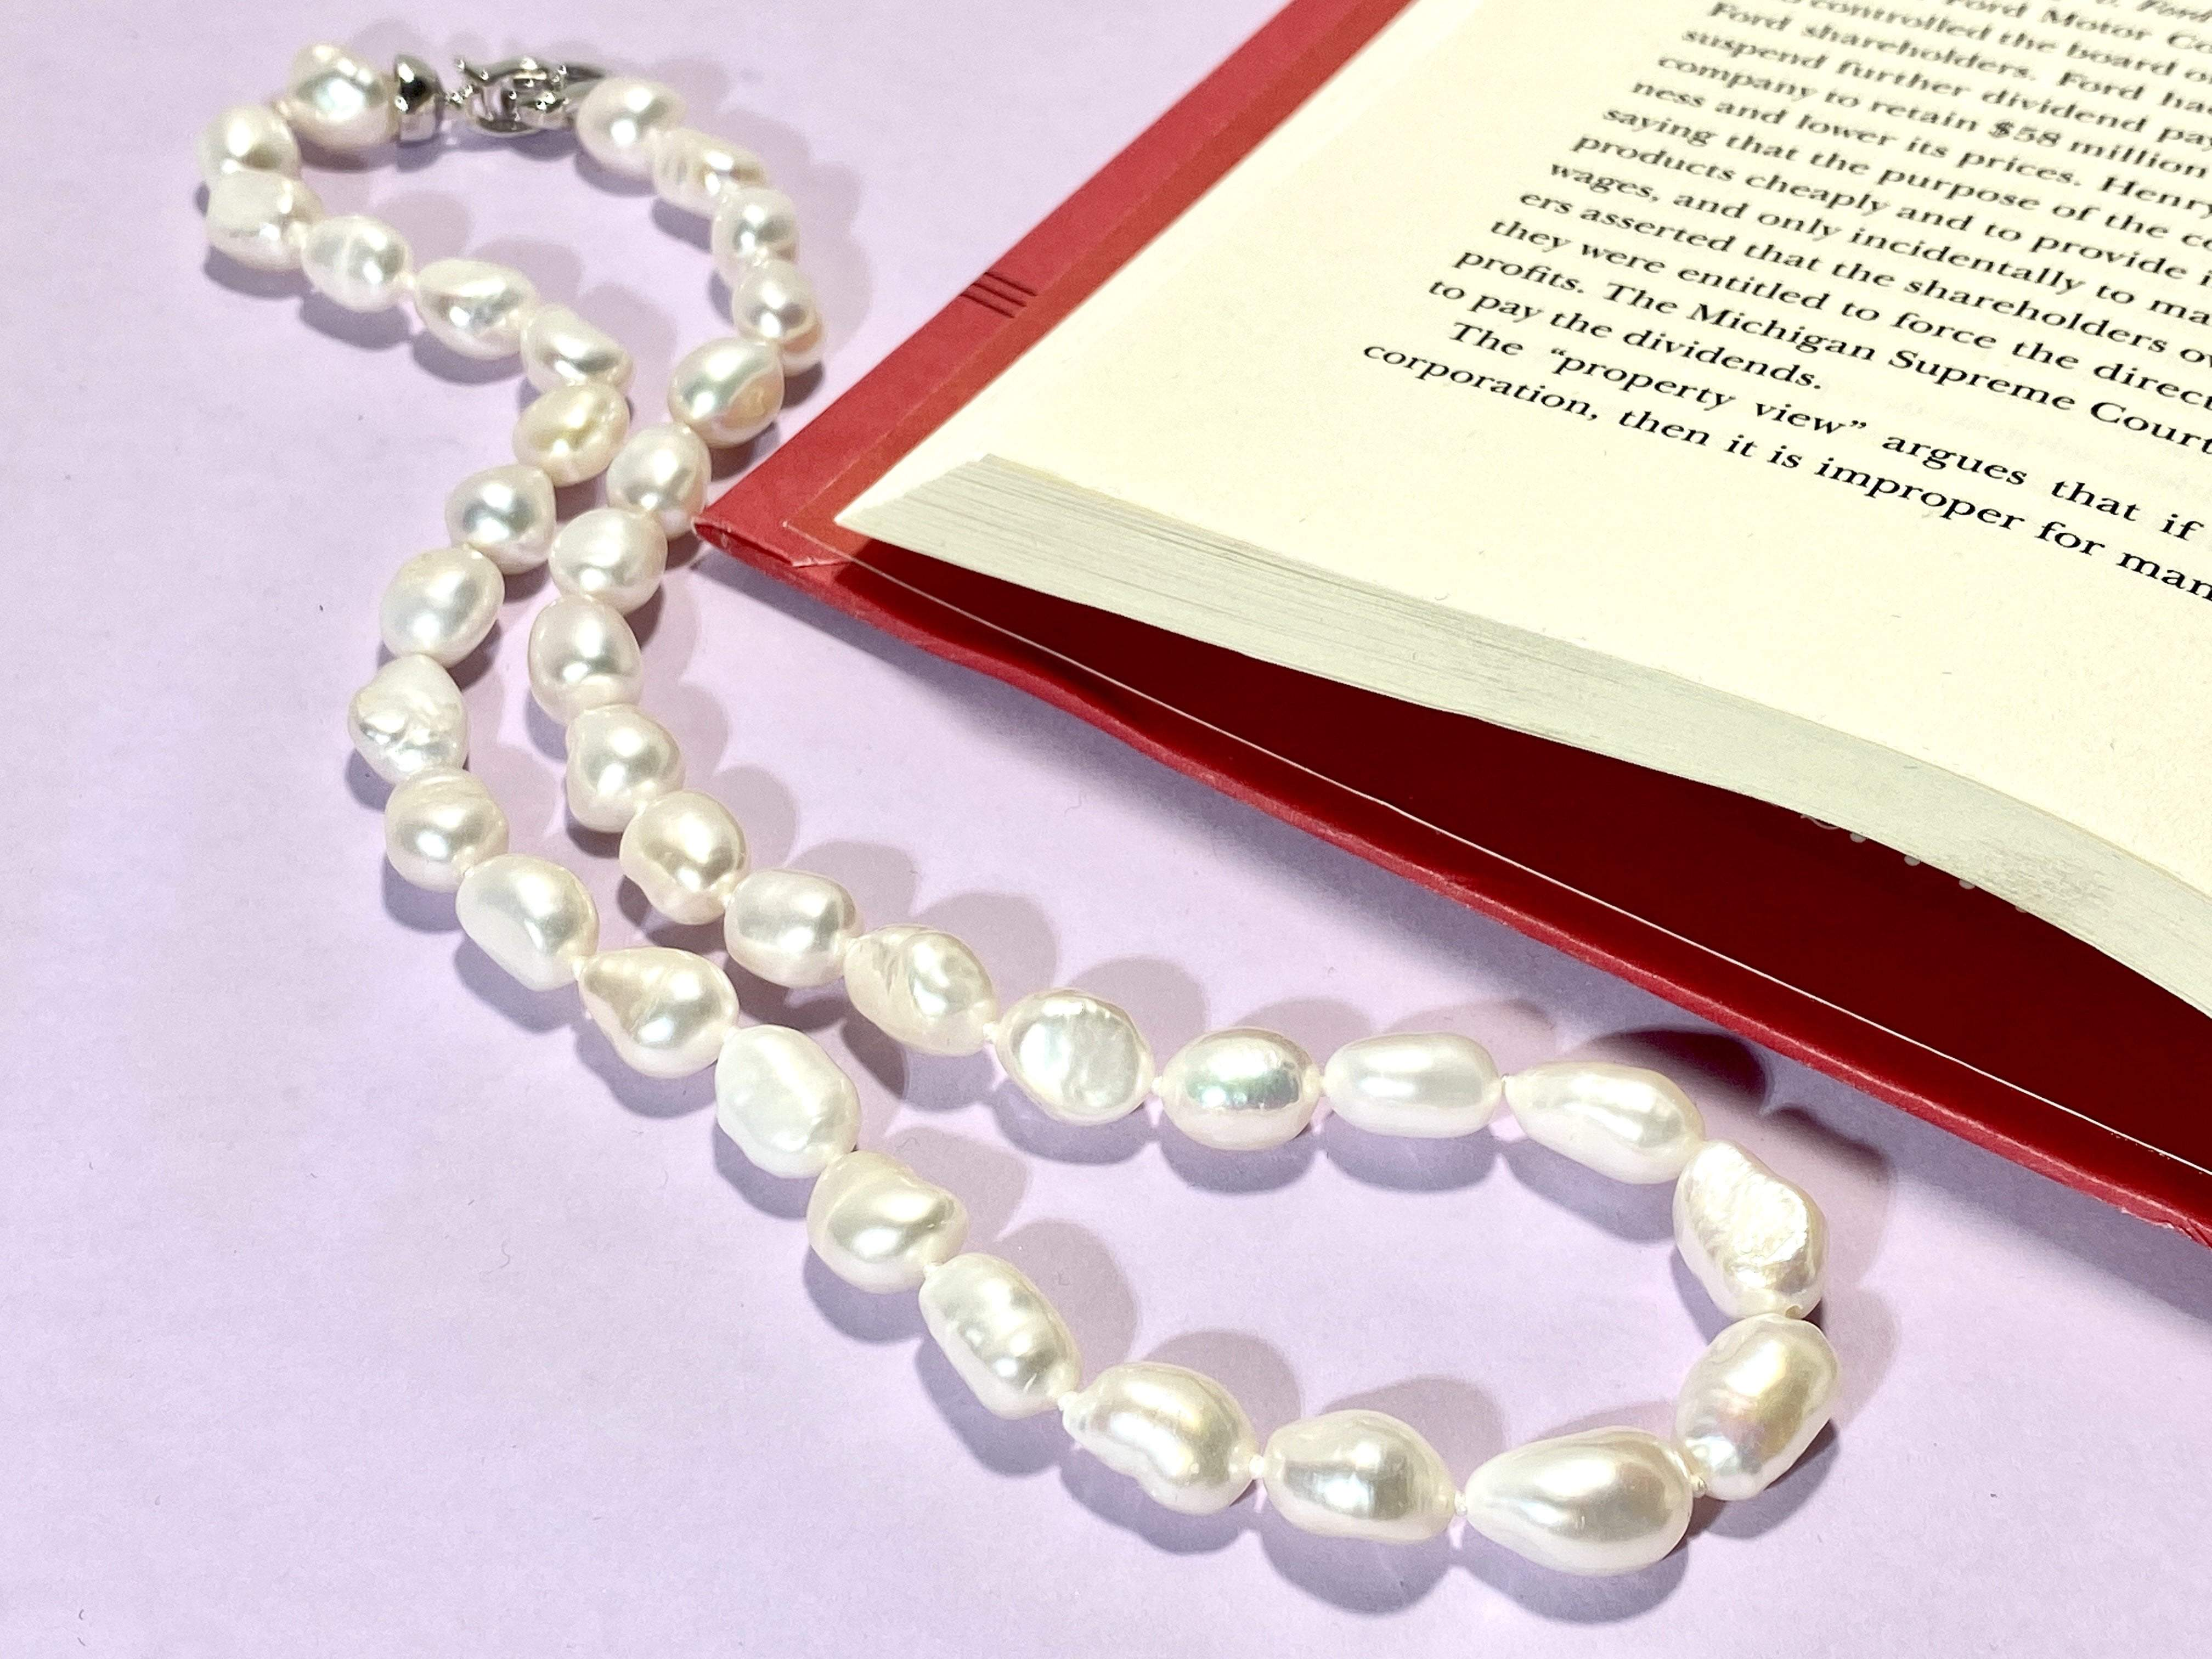 CLASSY ME - Love Letter Jewelry - 925 Sterling Silver Jewelry - Organic Pearl Jewelry